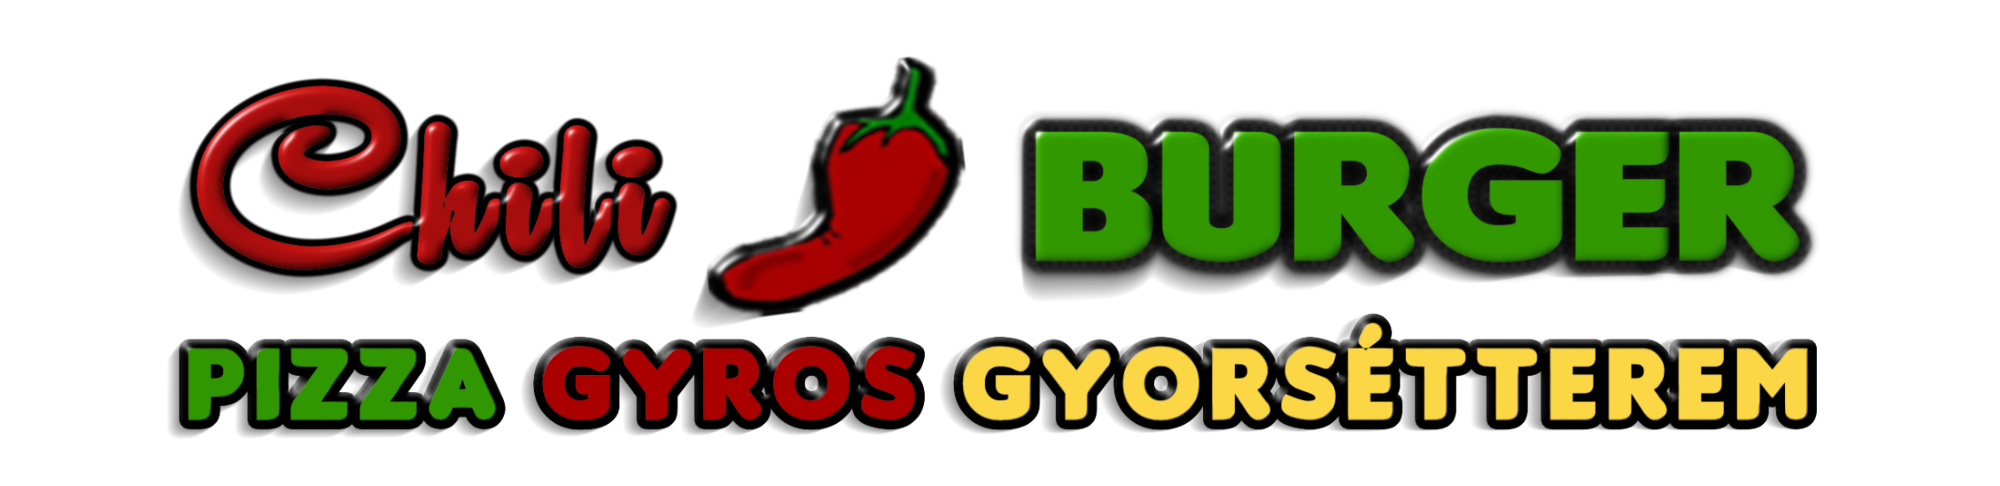 ChiliBurger Pizza & Gyros gyorsétterem